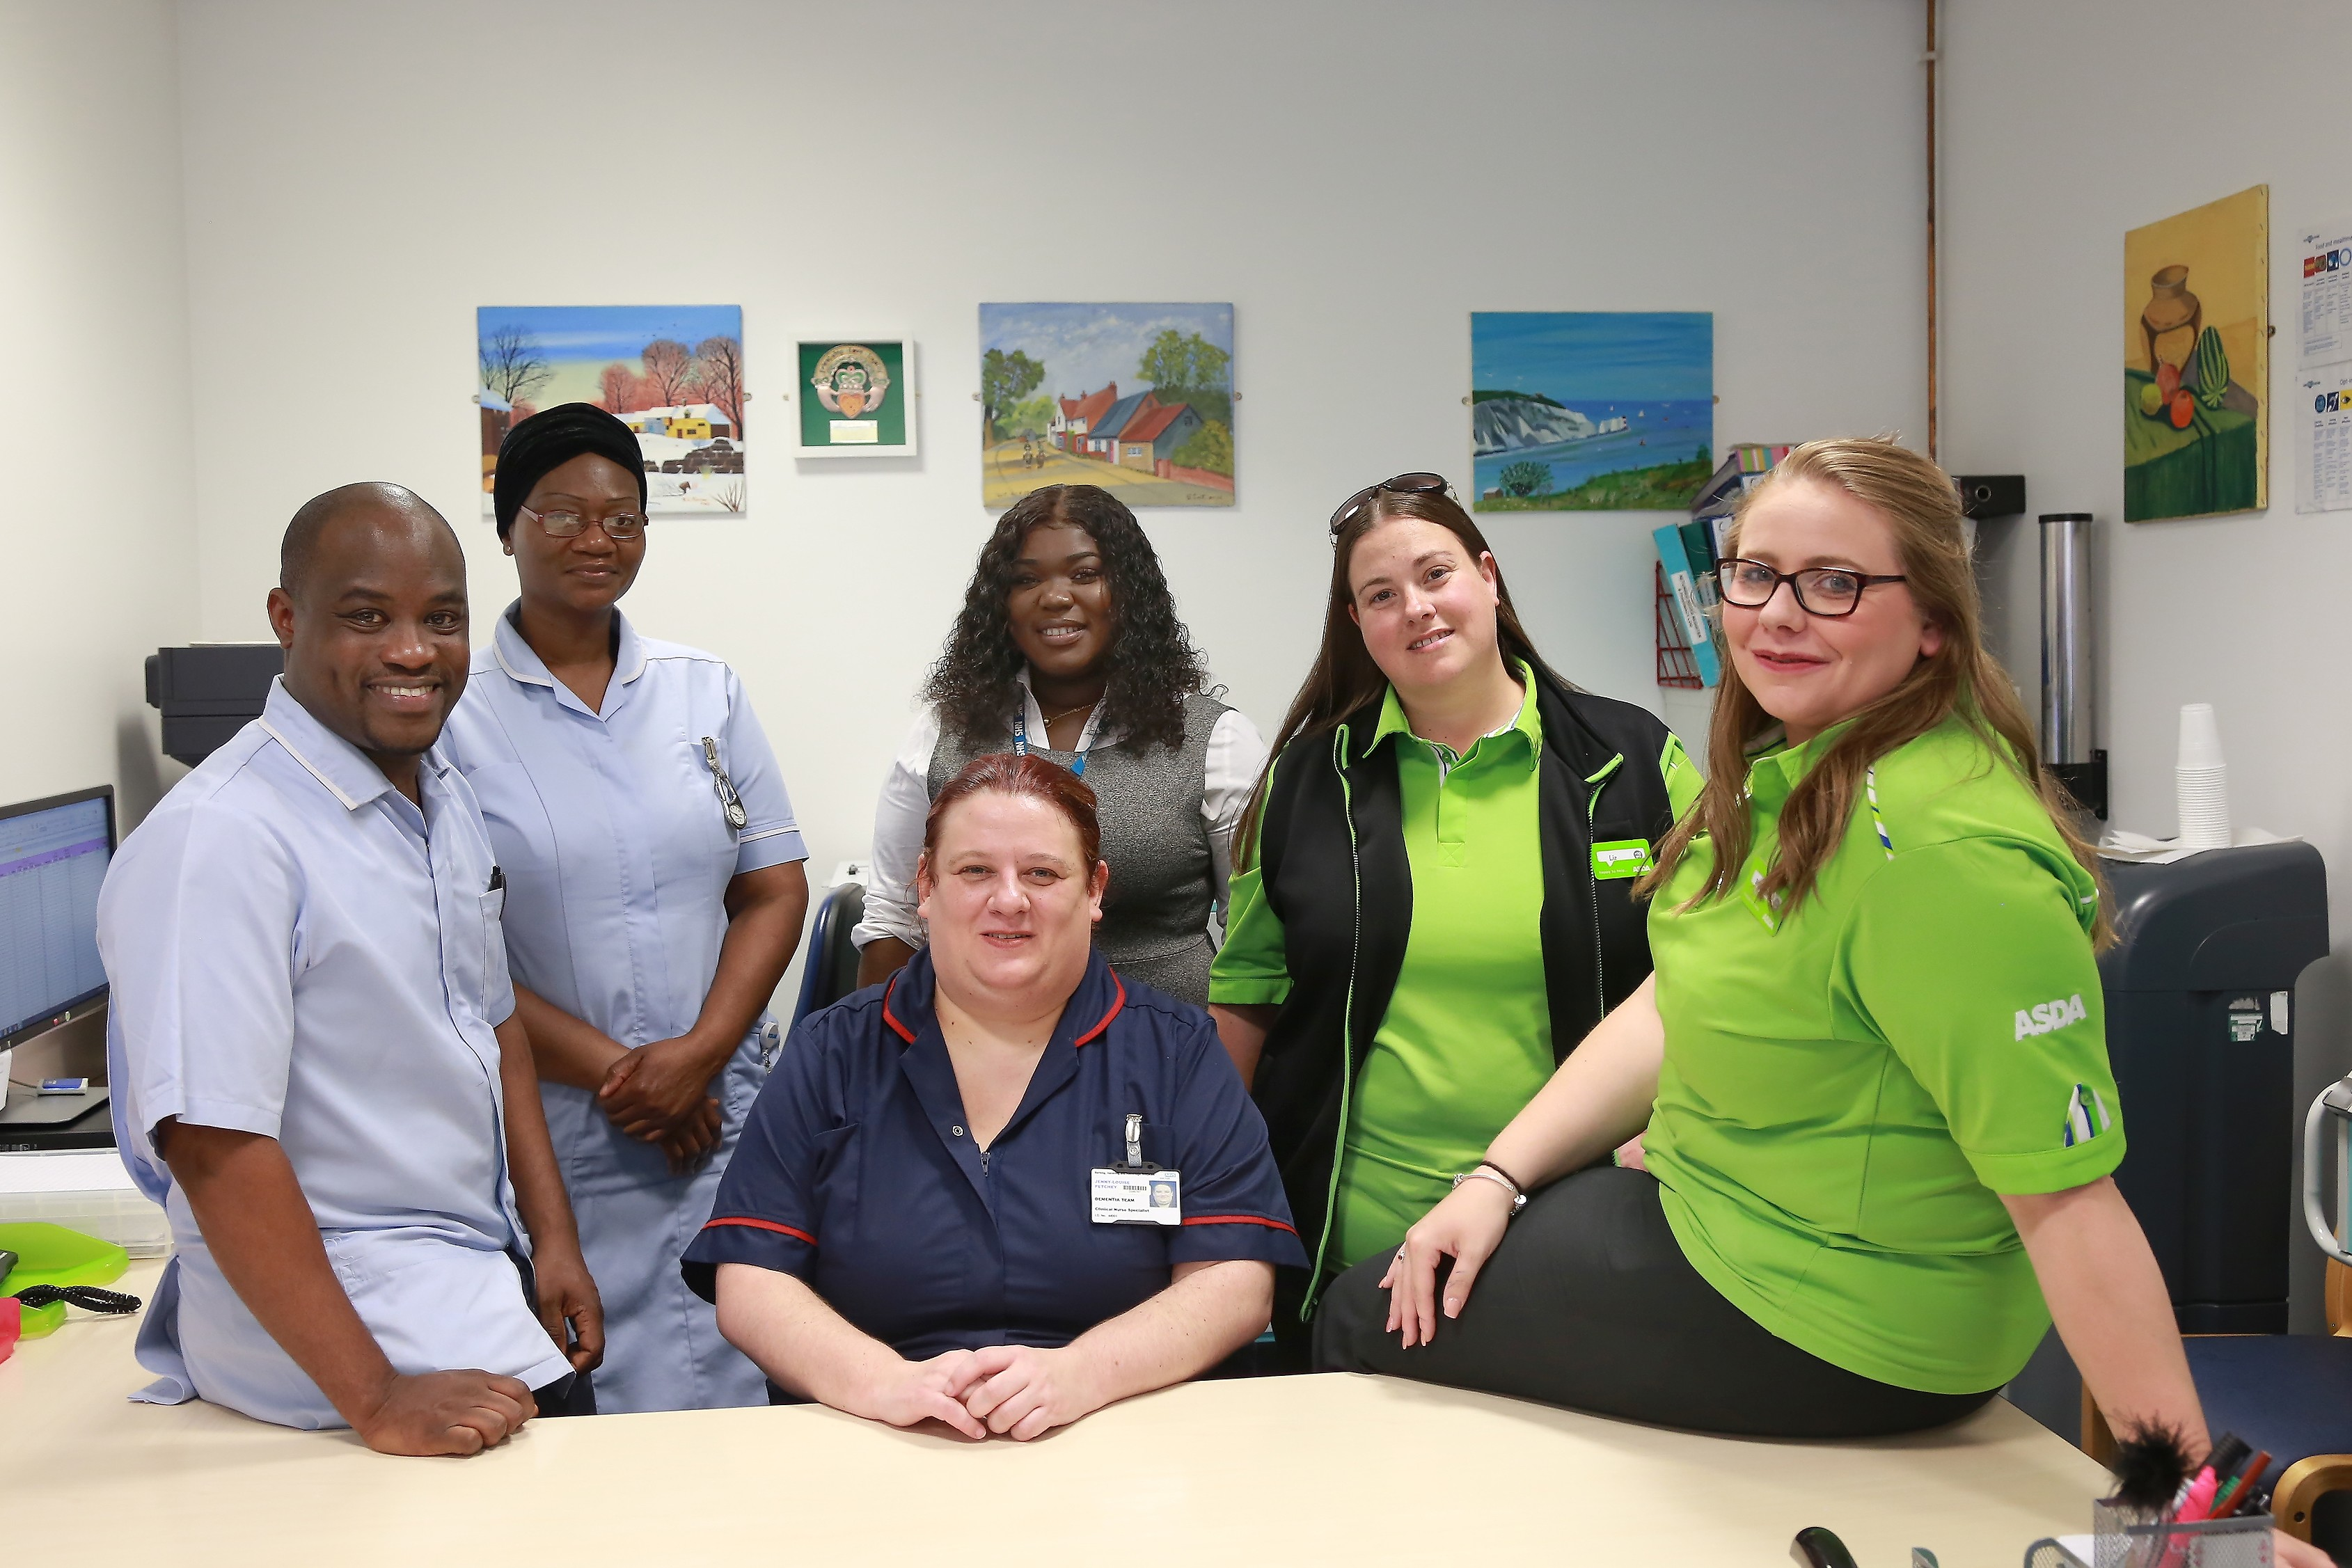 Asda Chadwell Heath donated £25,000 to the King George and Queen's Hospital Charity